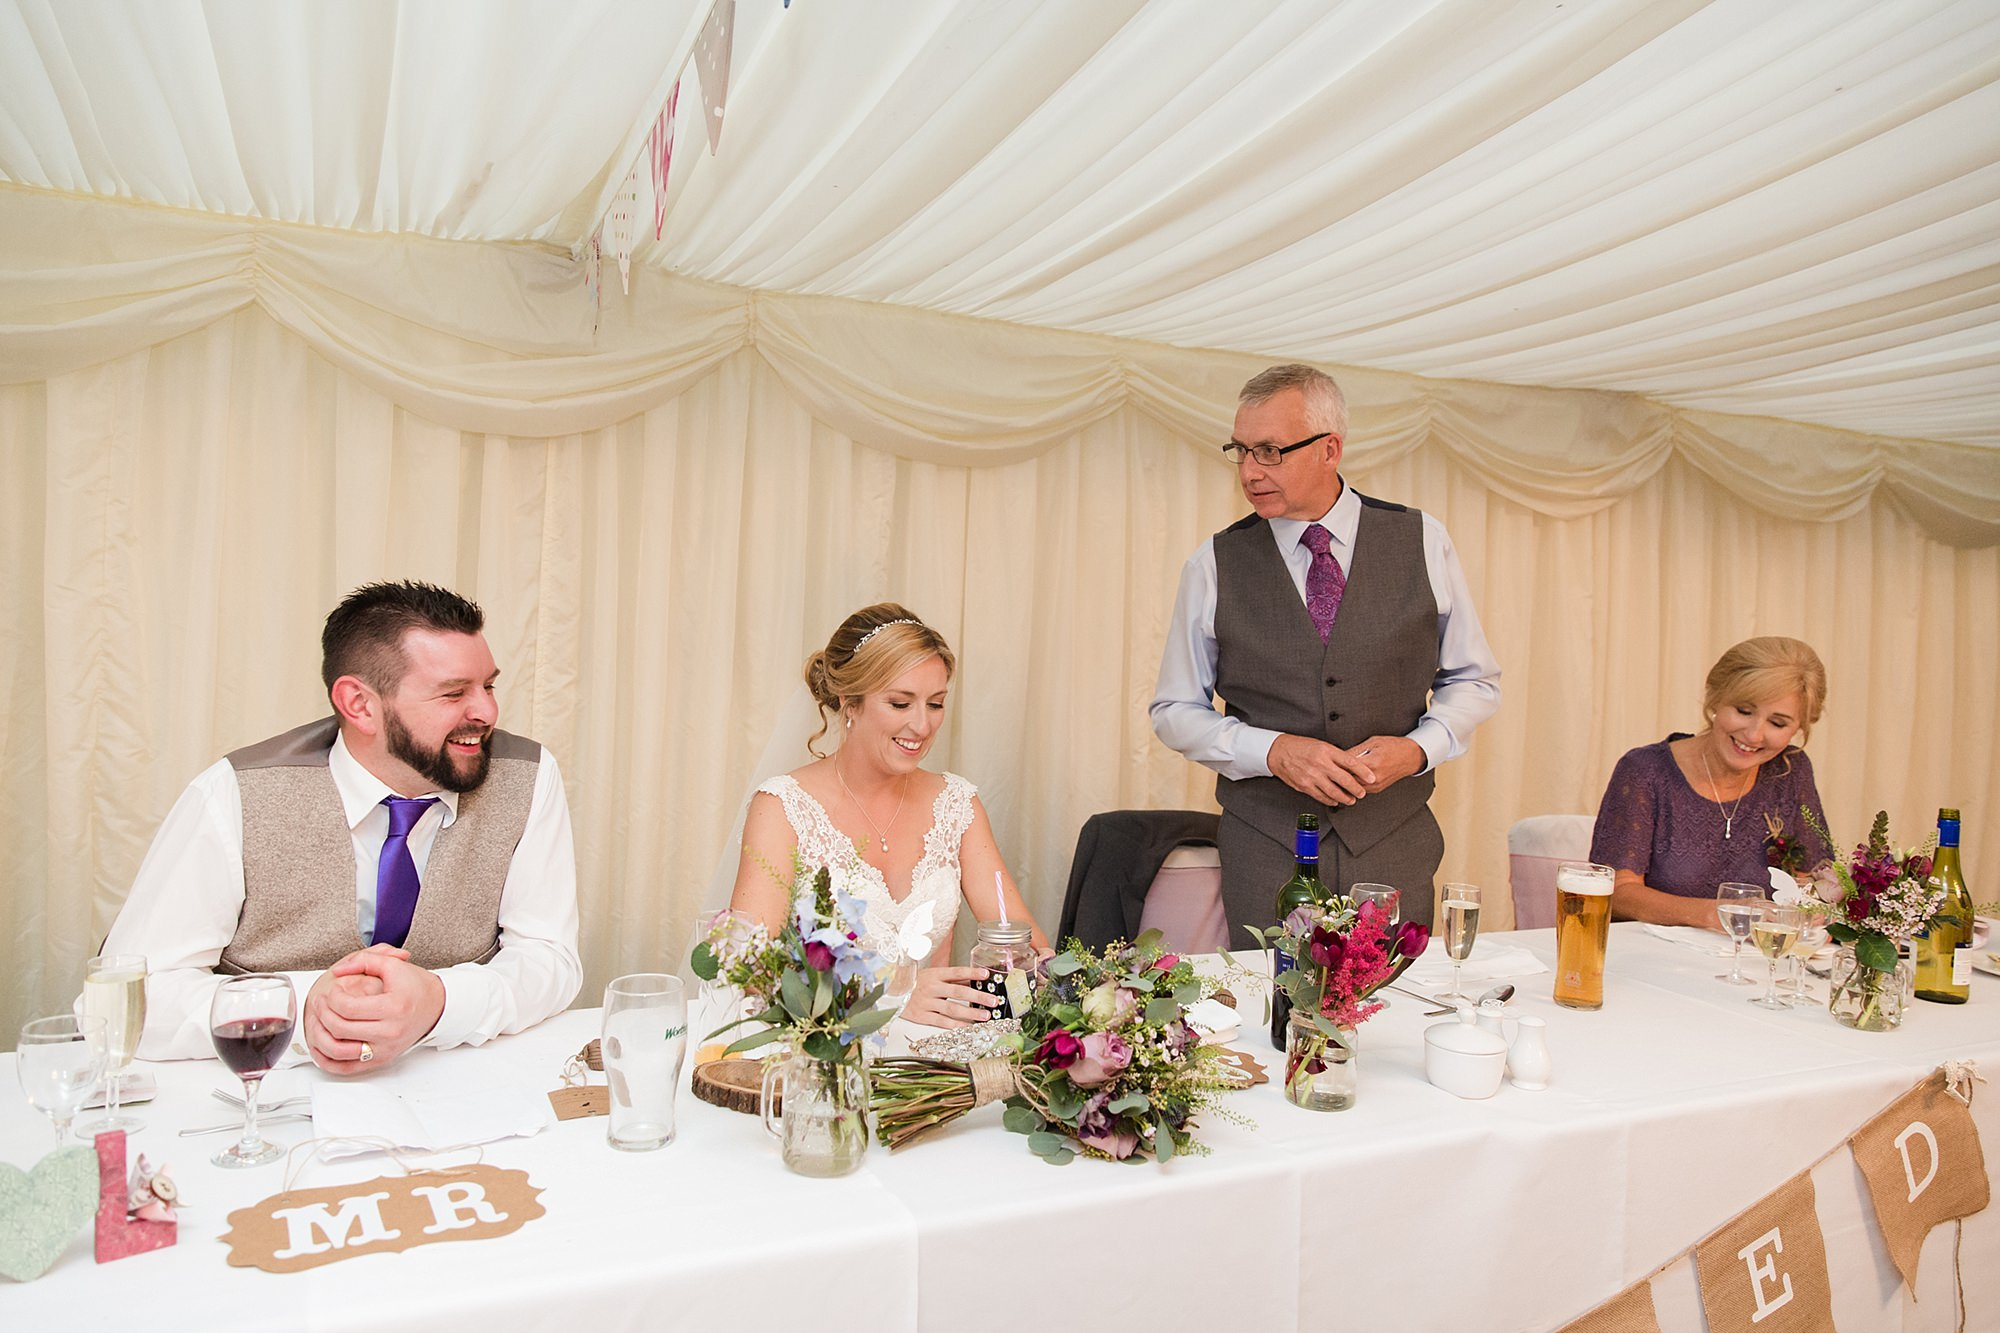 A fun wedding at Plas Isaffather of bride speech